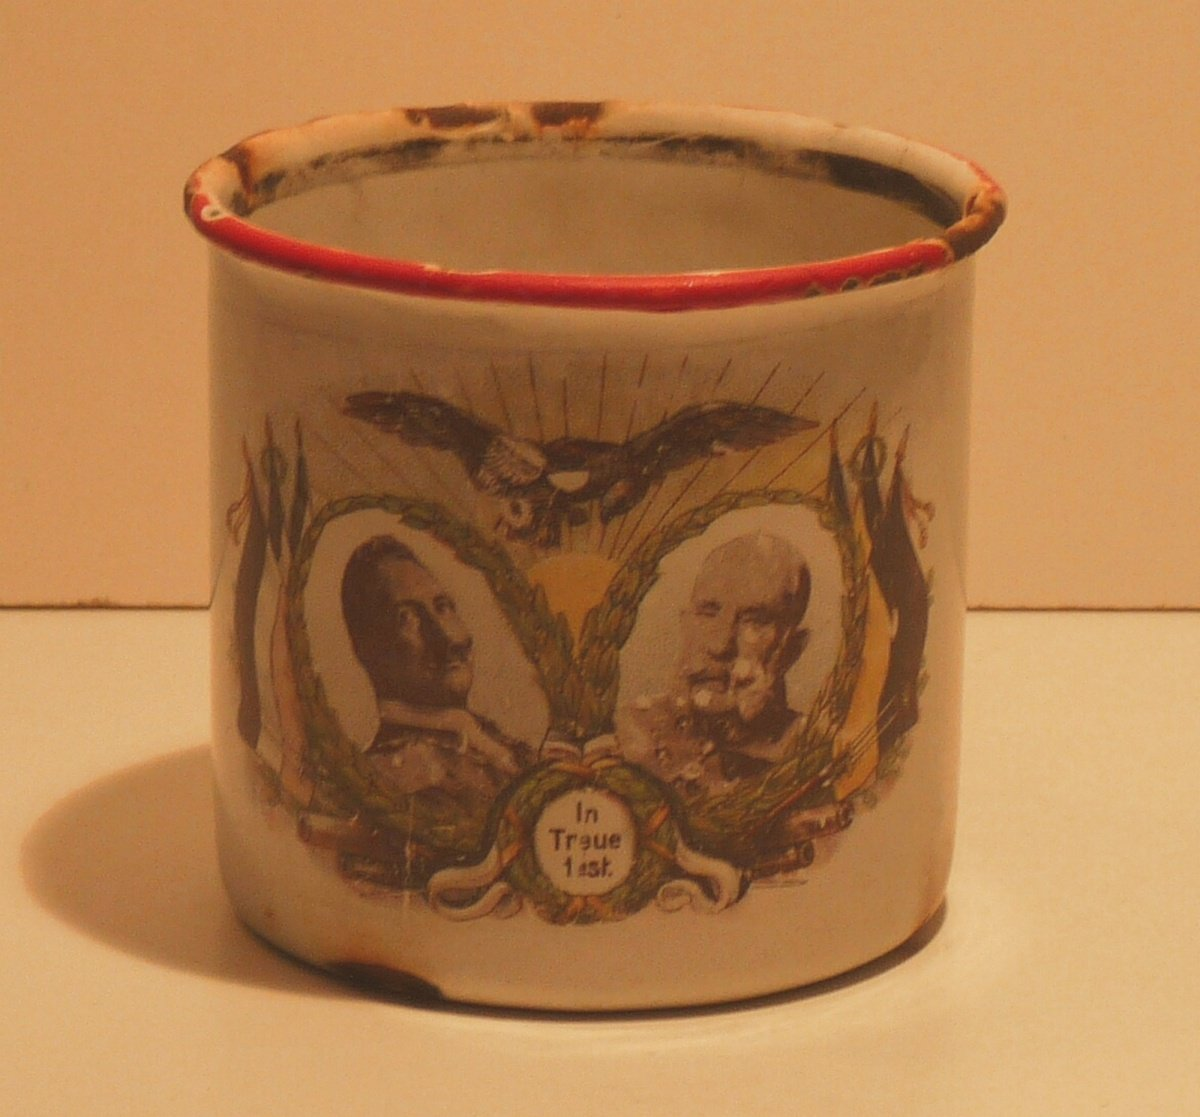 Metal cup with portrait of Franz Joseph I., Wilhelm II. and war decoration